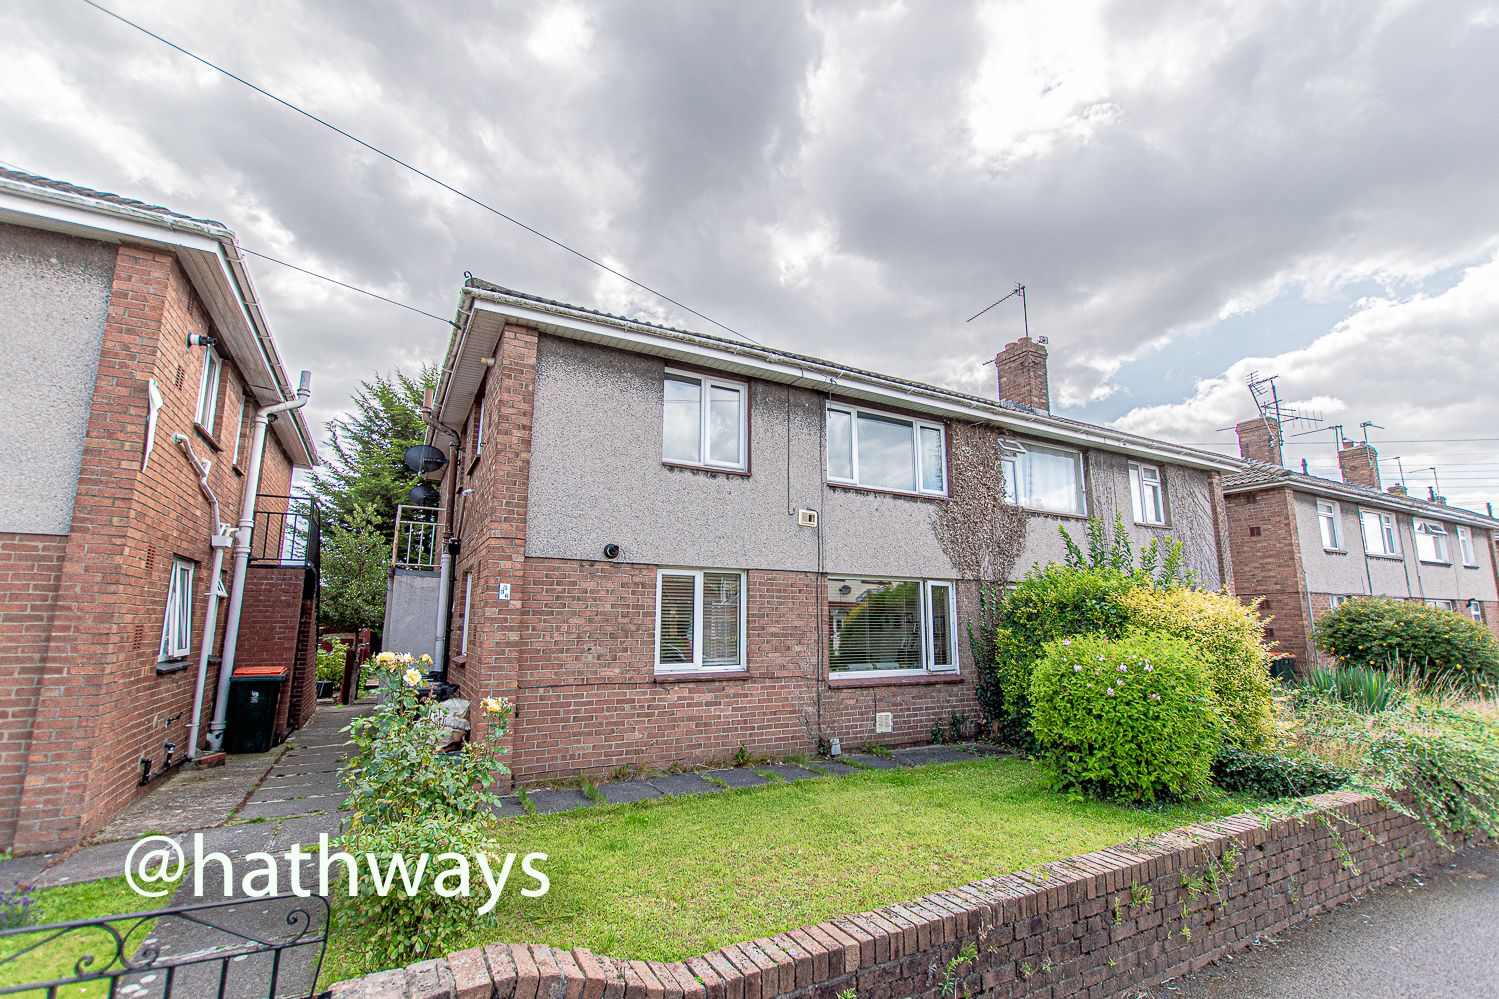 2 bed flat for sale in Colston Avenue, NP19